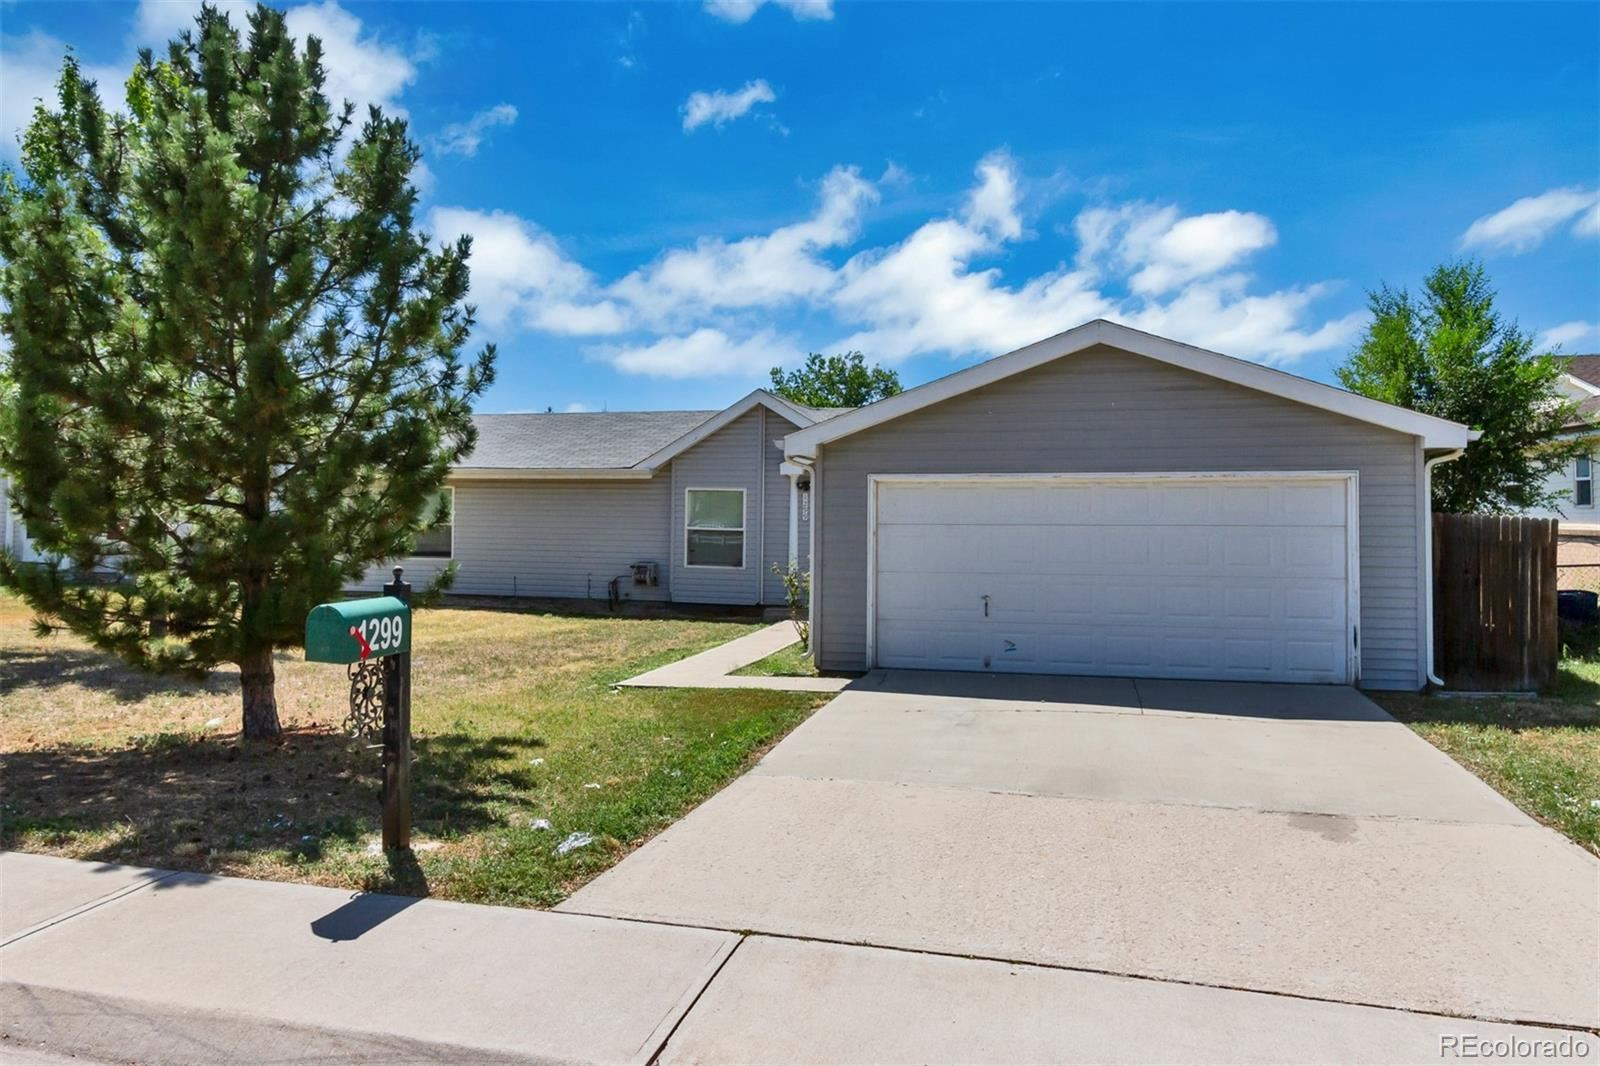 1299  Mobile Street, Aurora, CO 80011 - #: 3818205